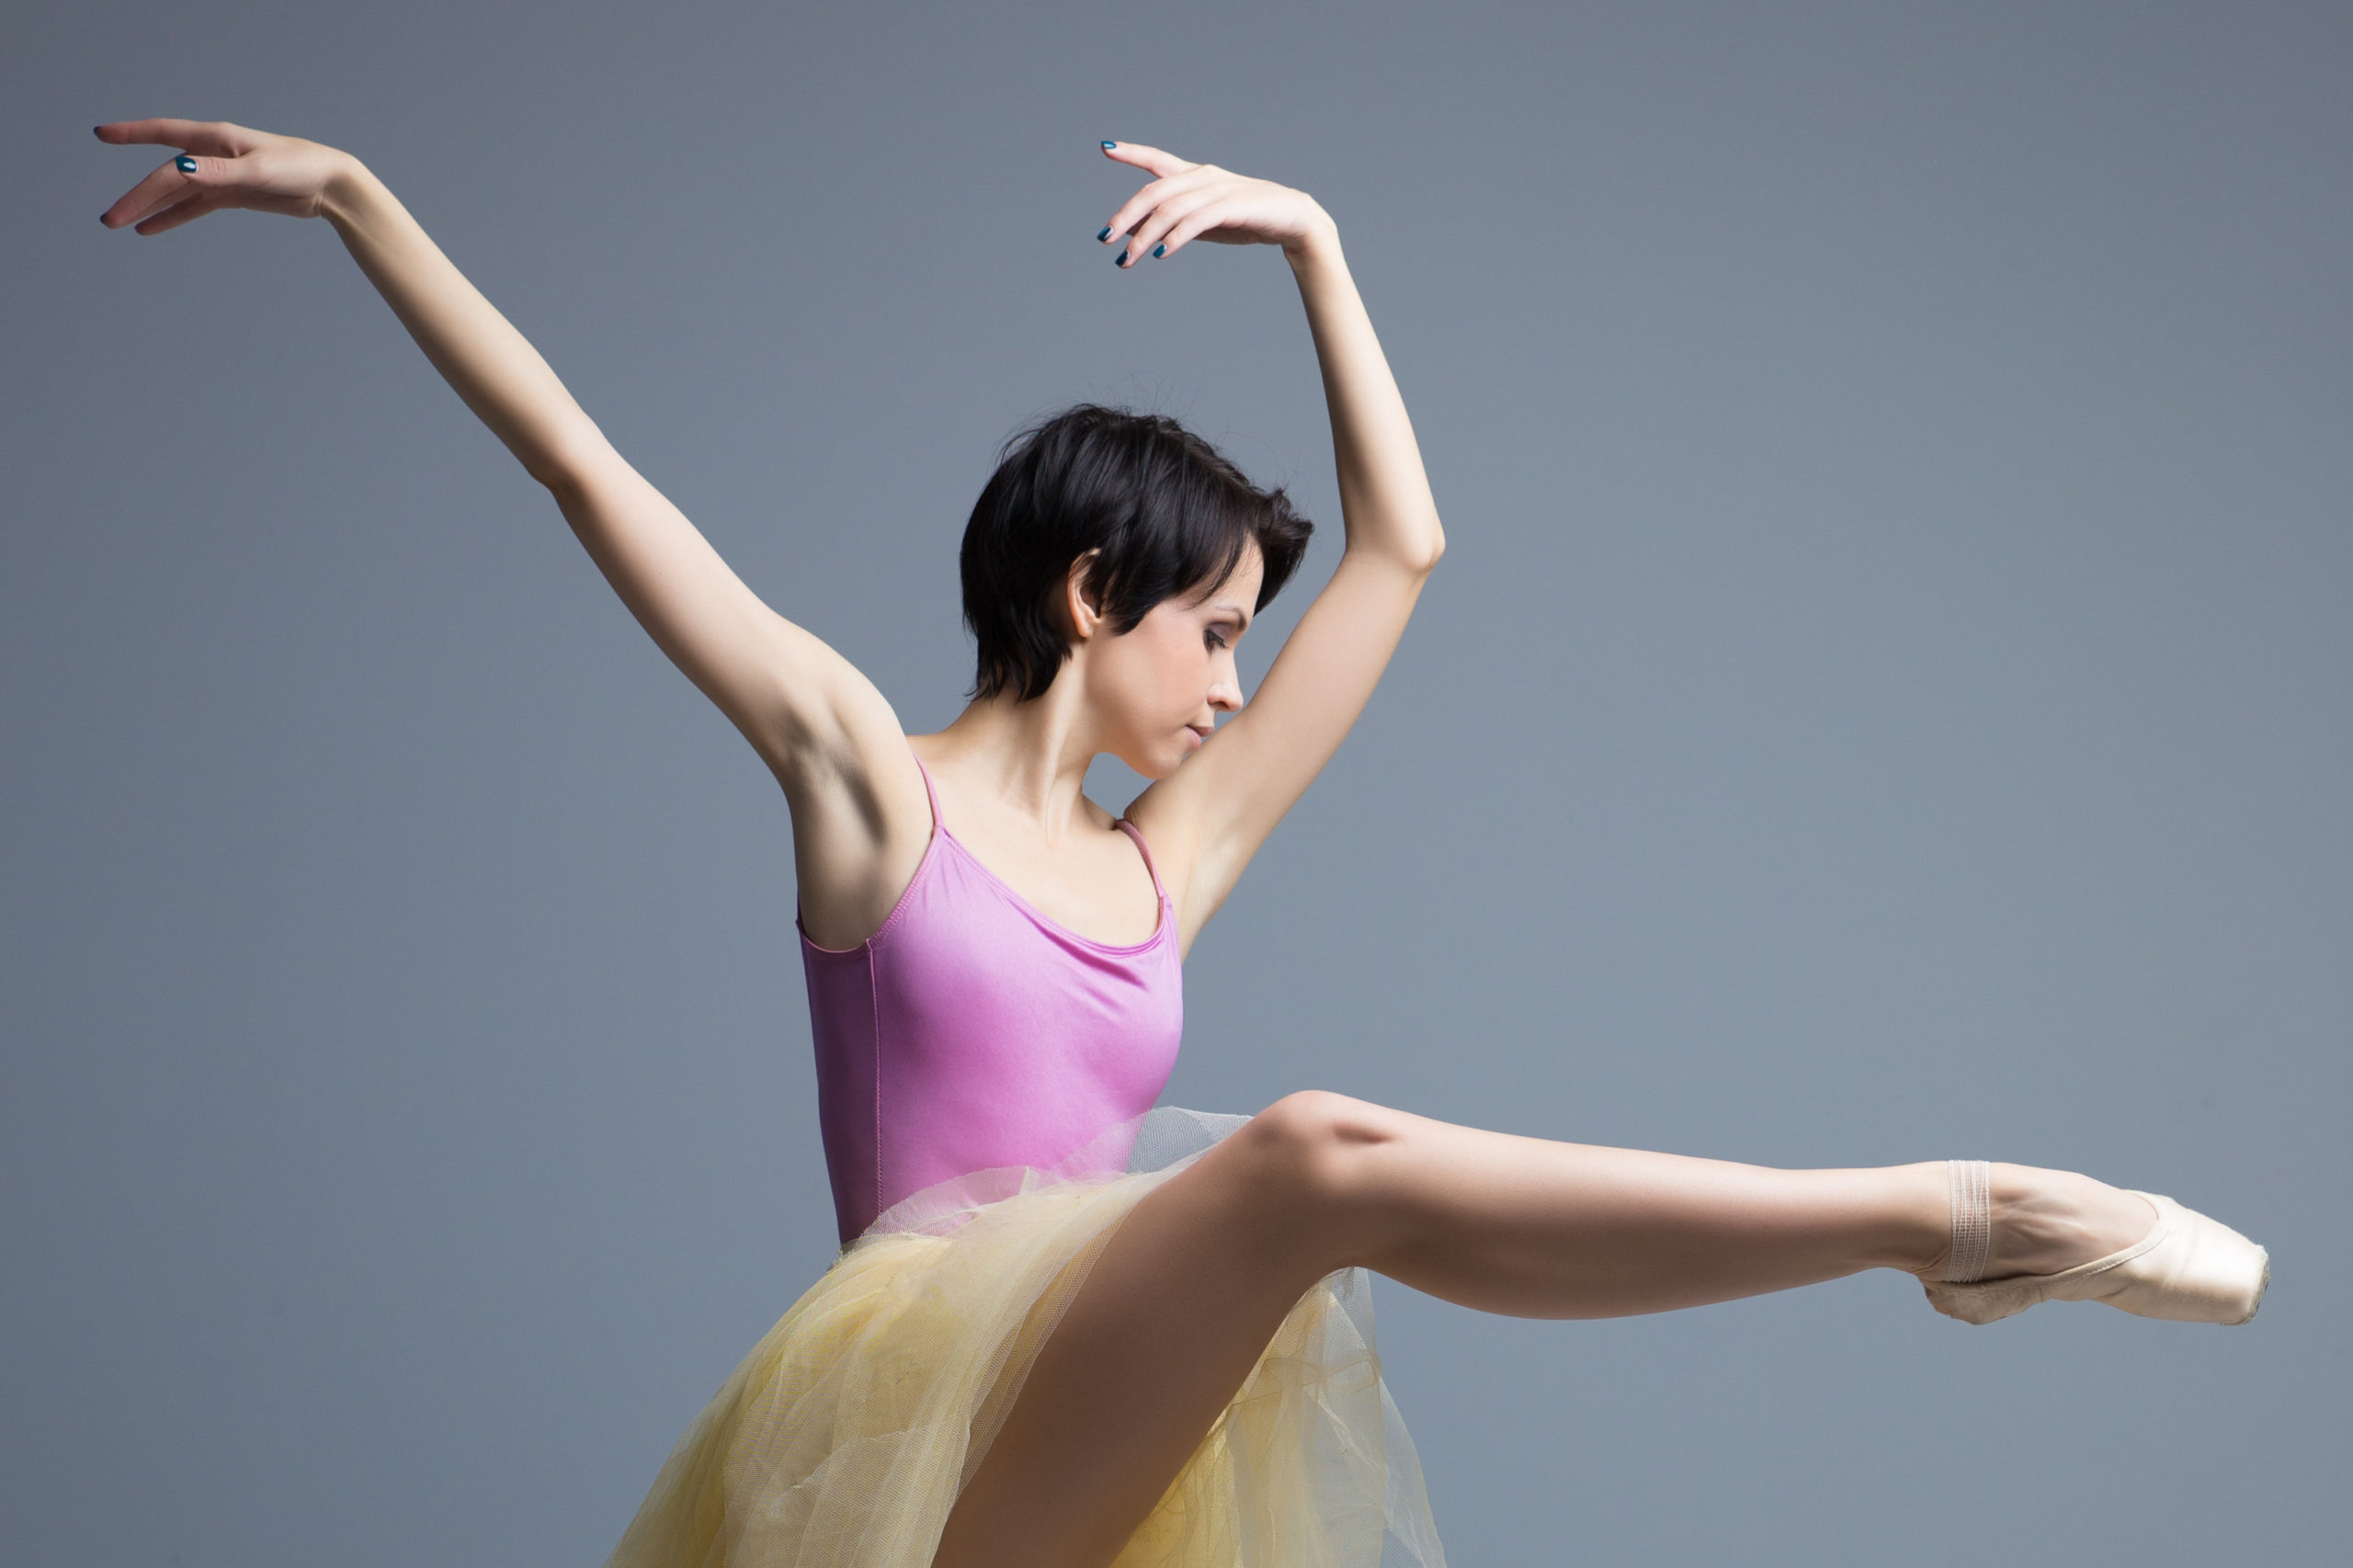 ballerina is dancing in the studio on a gray background.